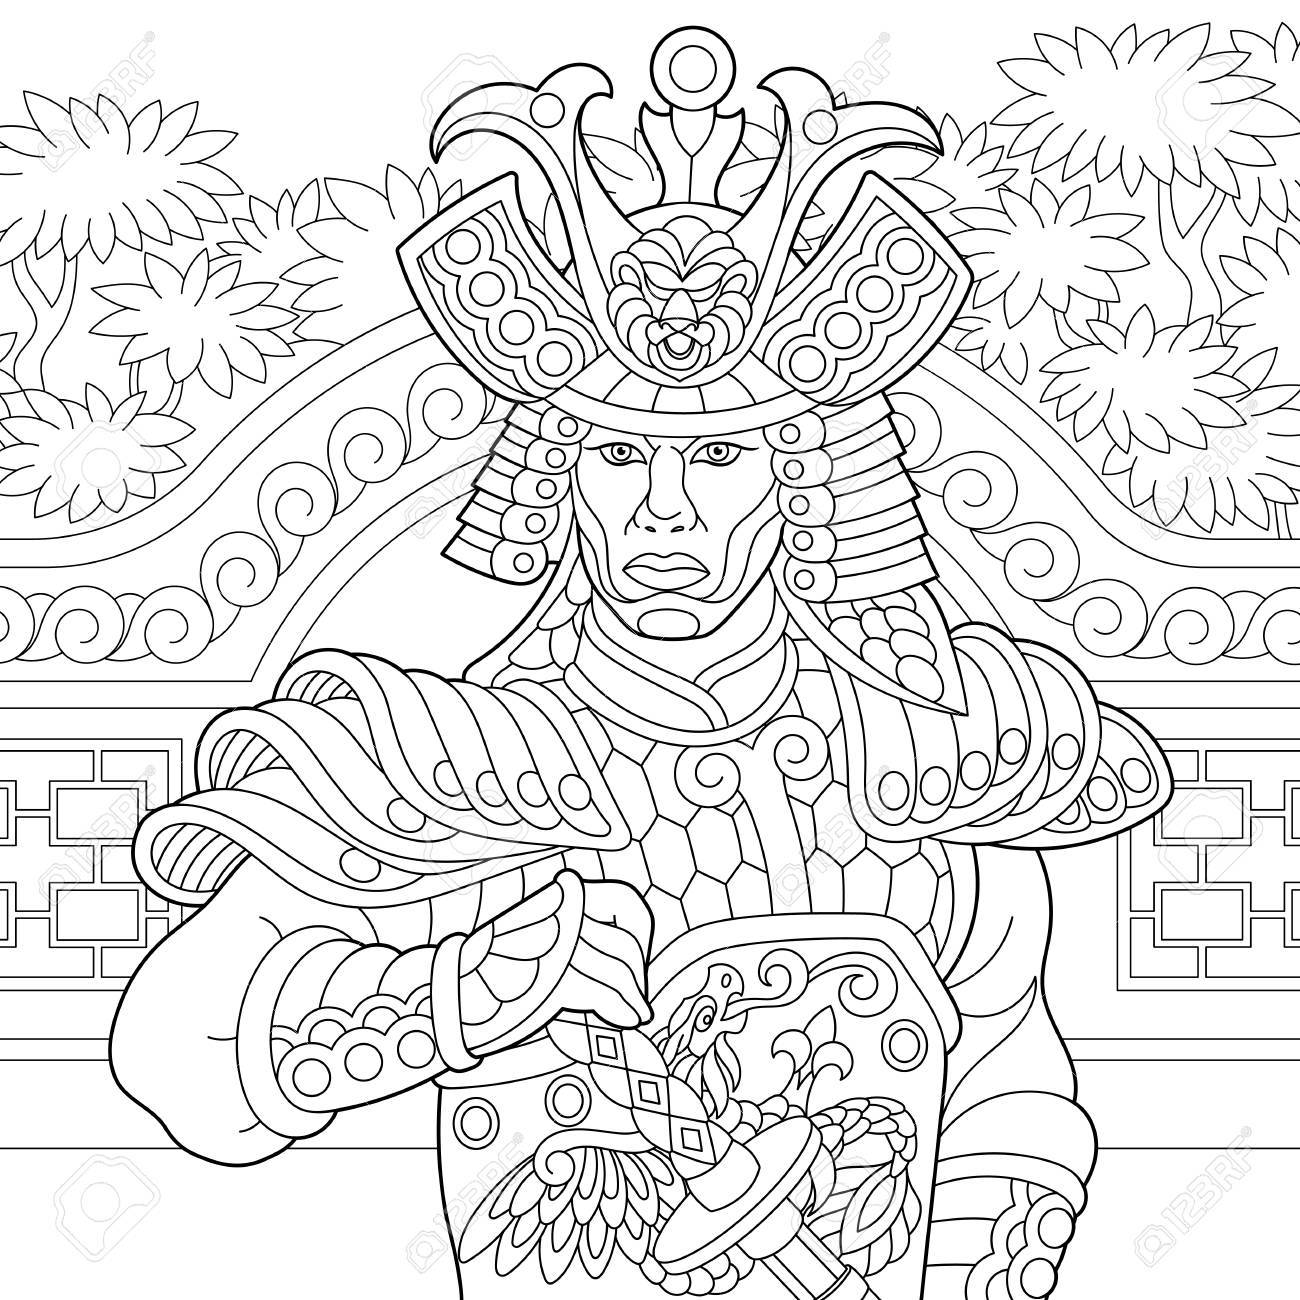 1300x1300 Coloring Page Of Japanese Samurai With Katana Sword. Freehand